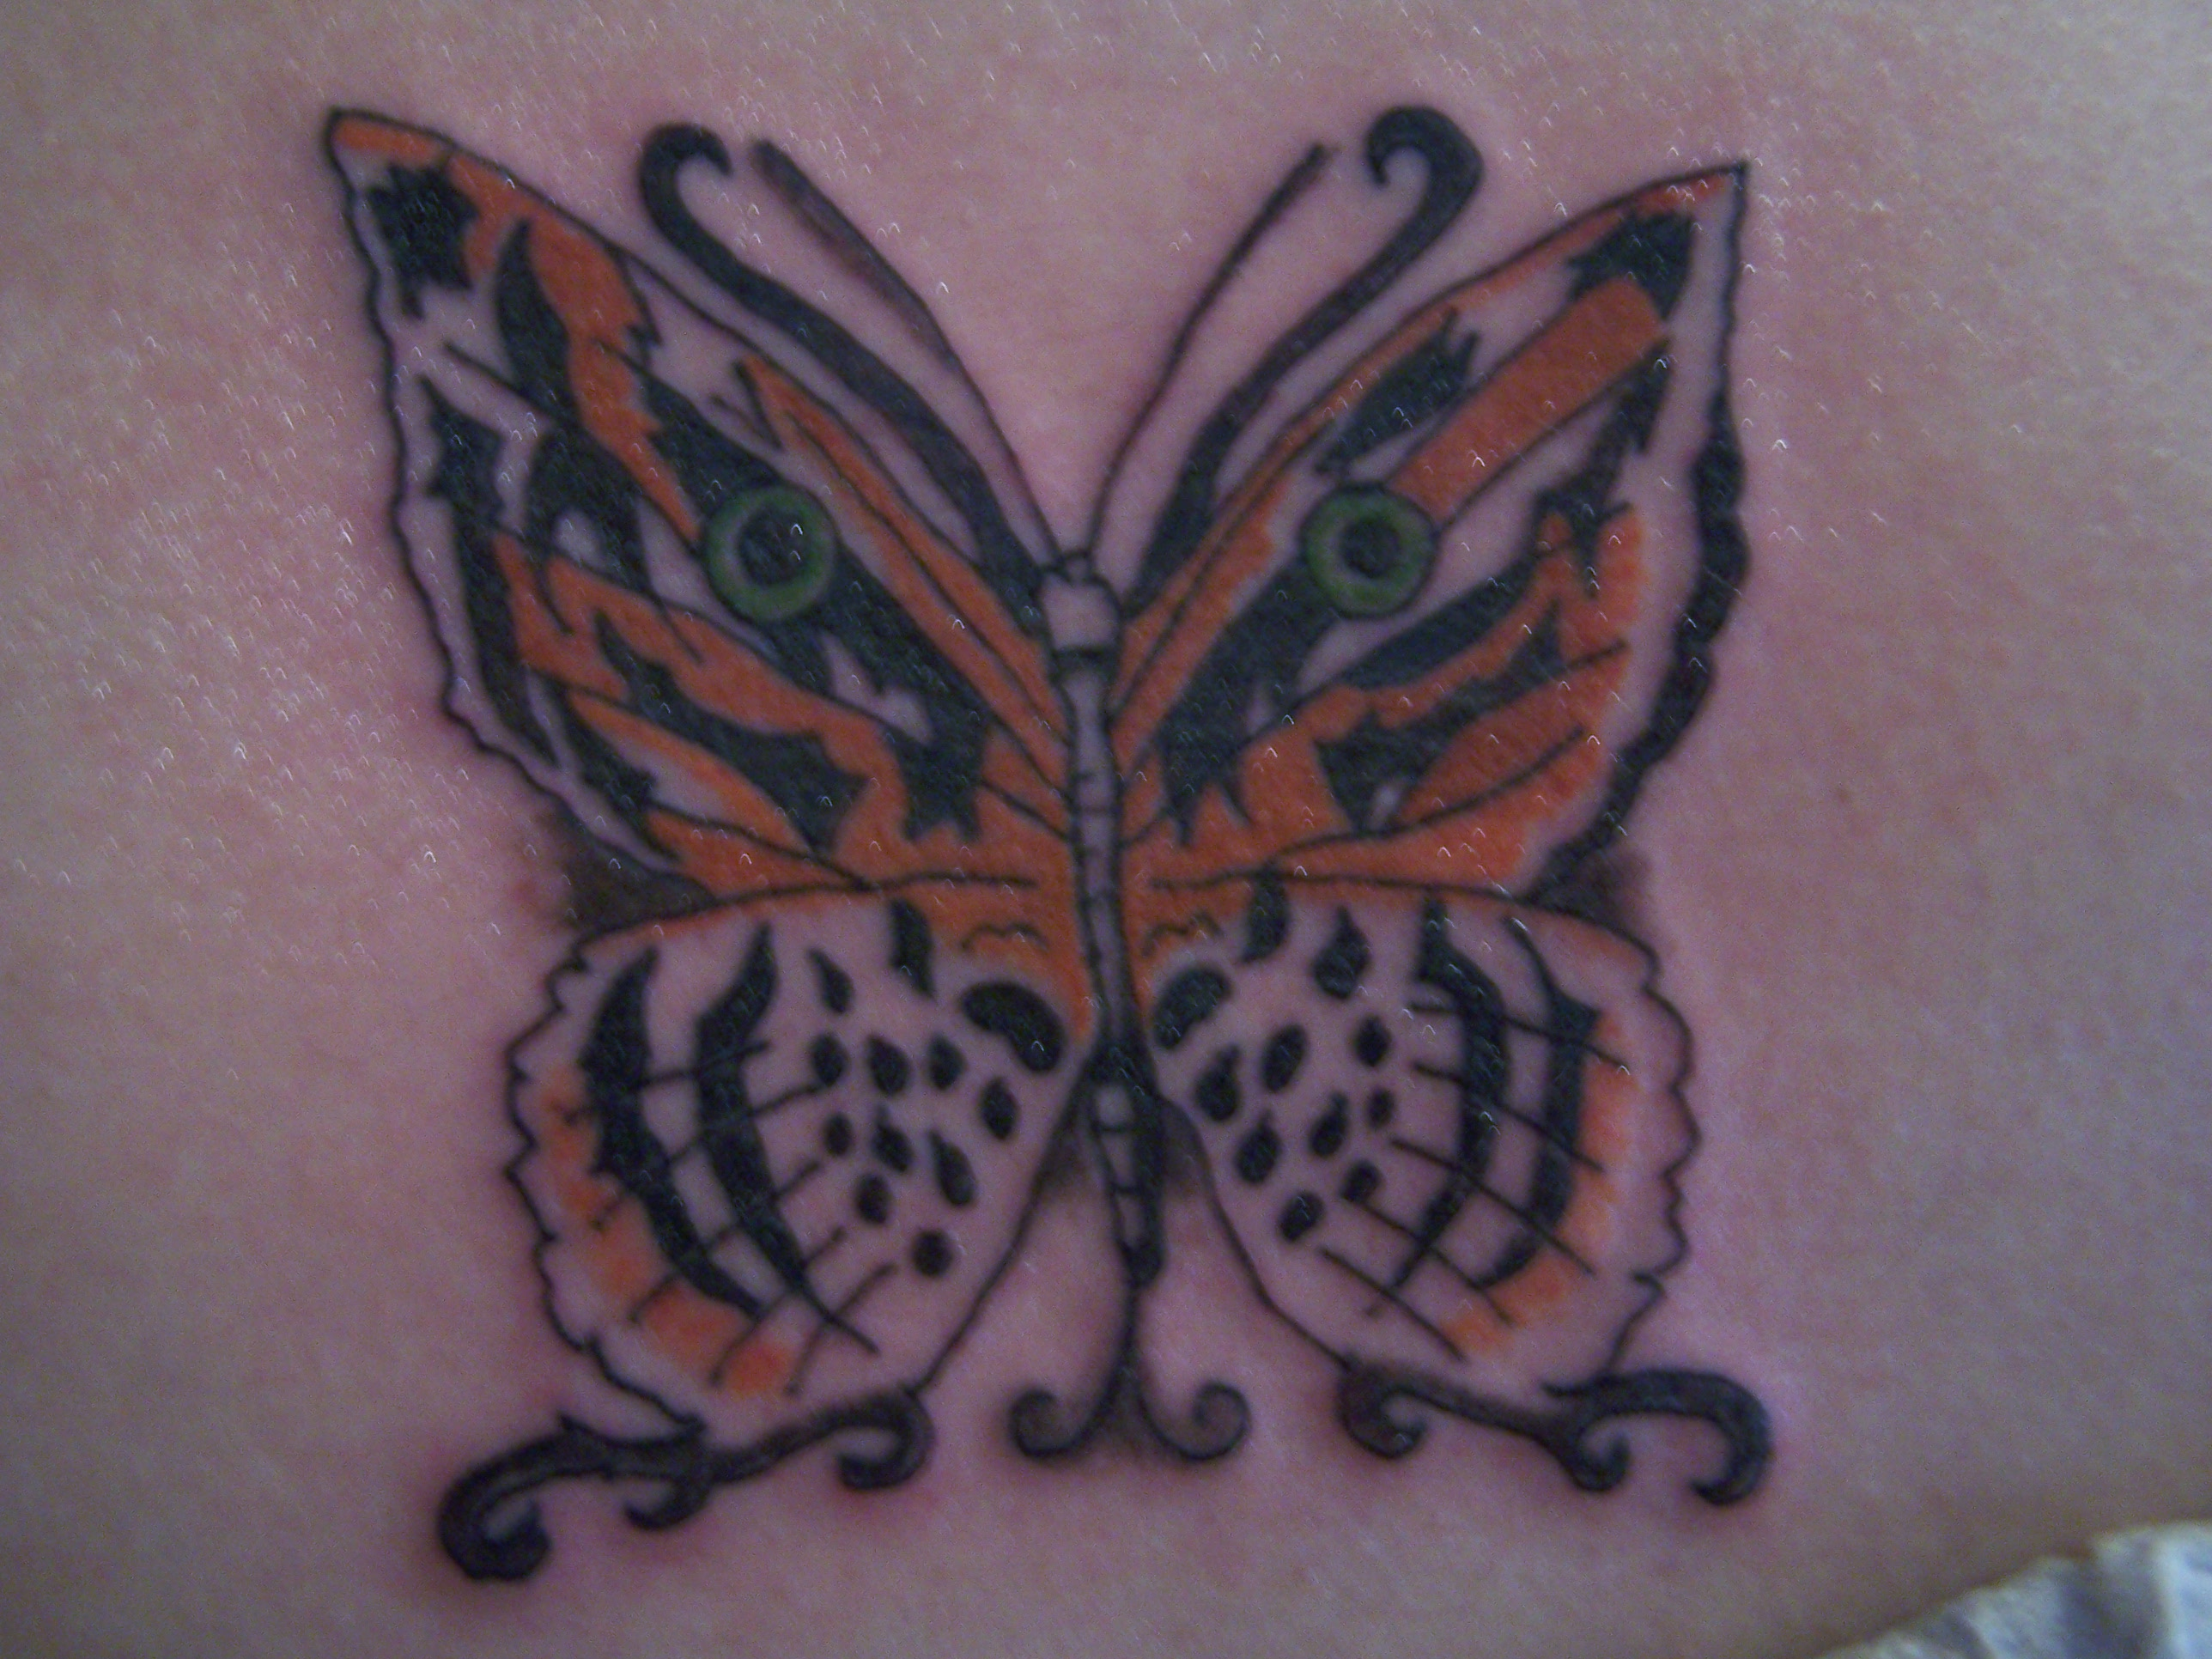 MY TATTOO WORK 5